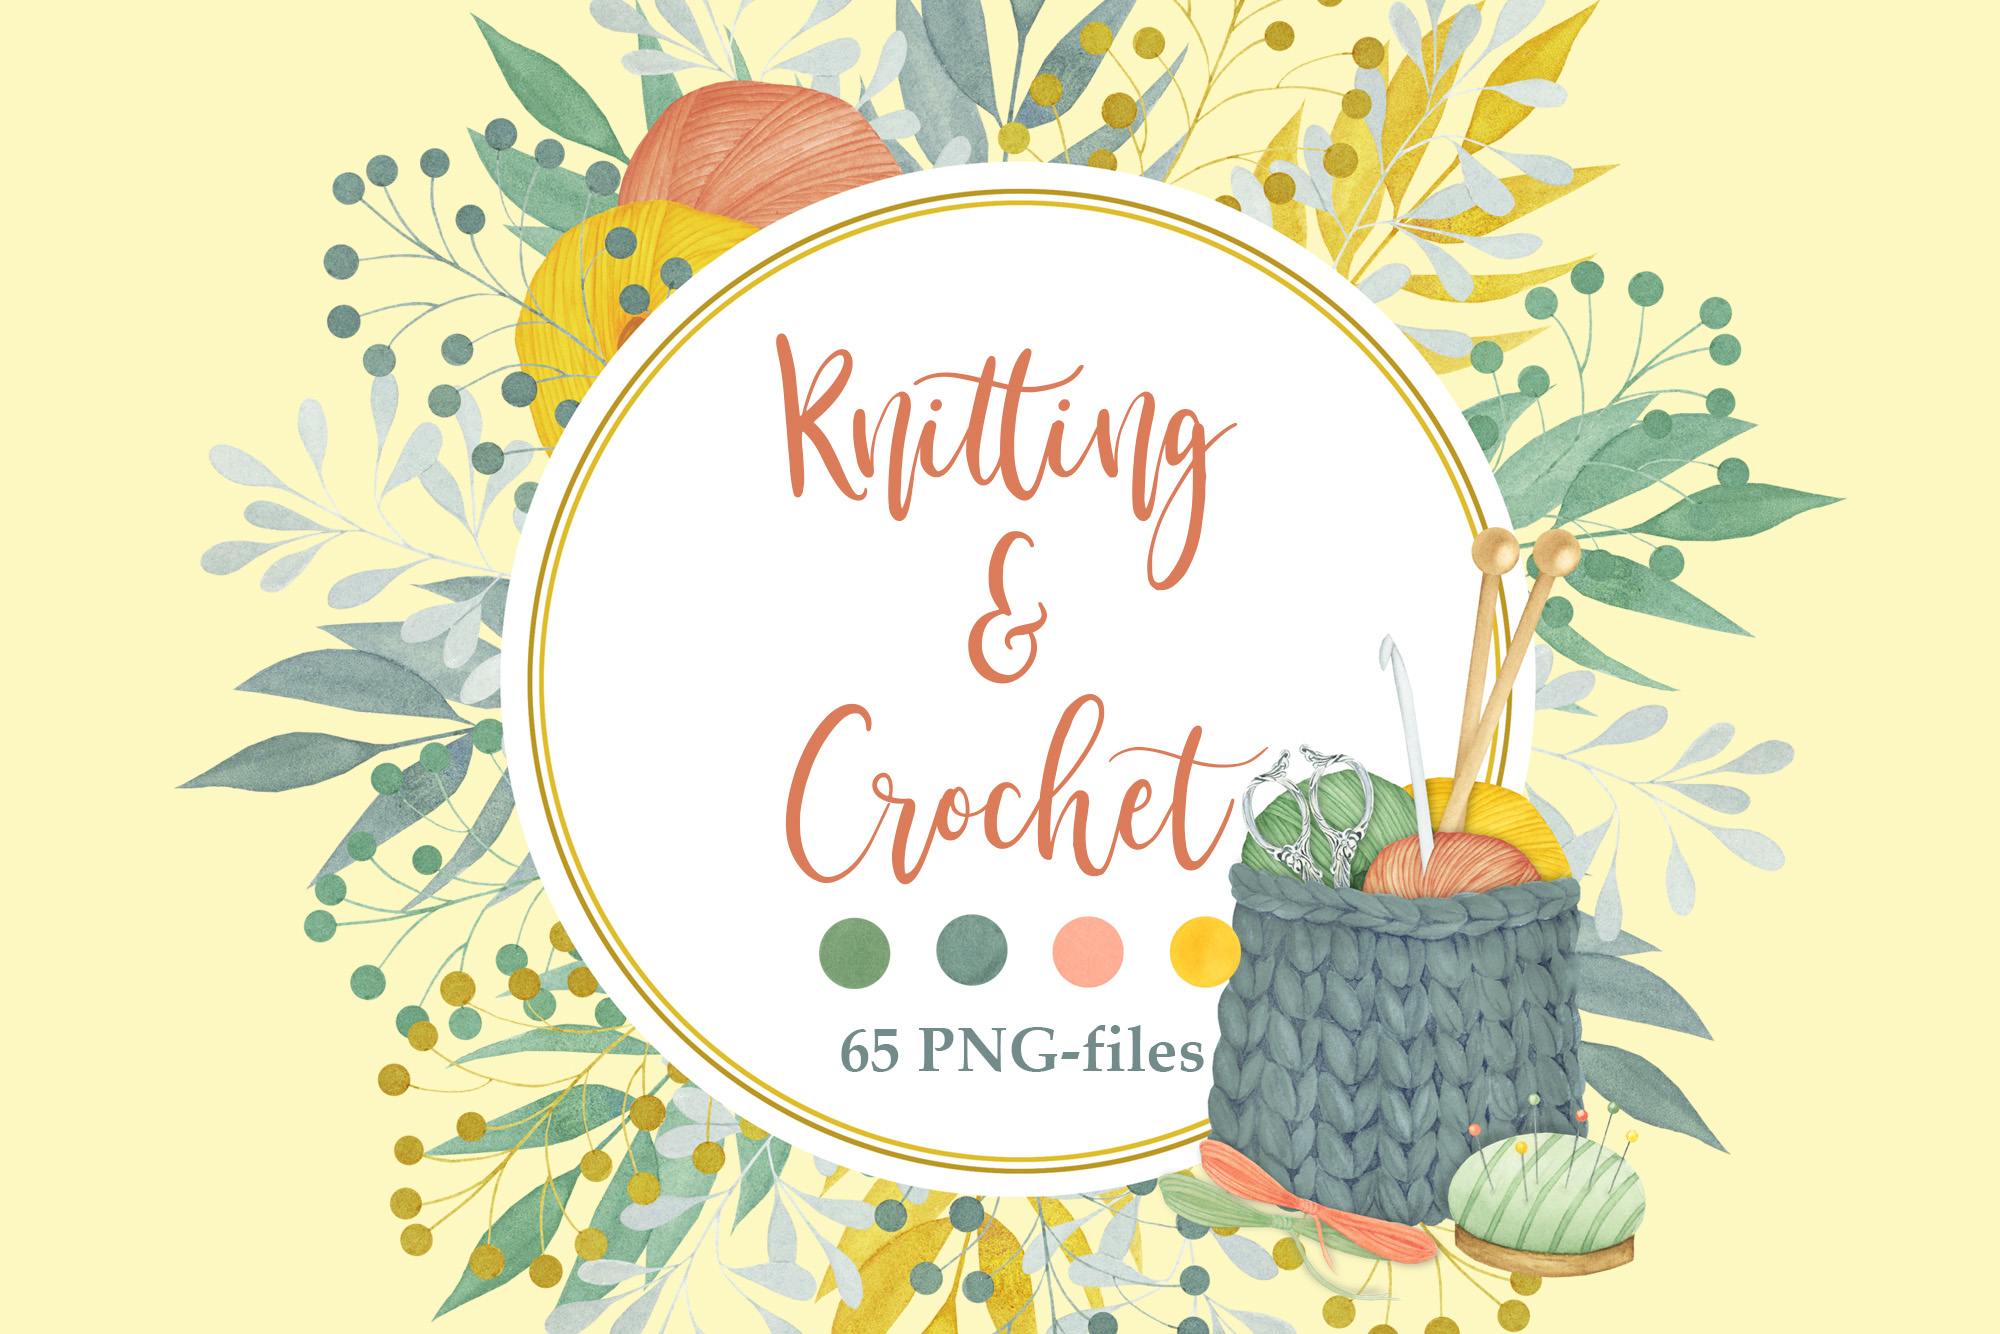 Watercolor Knitting and Crochet Clipart example image 1